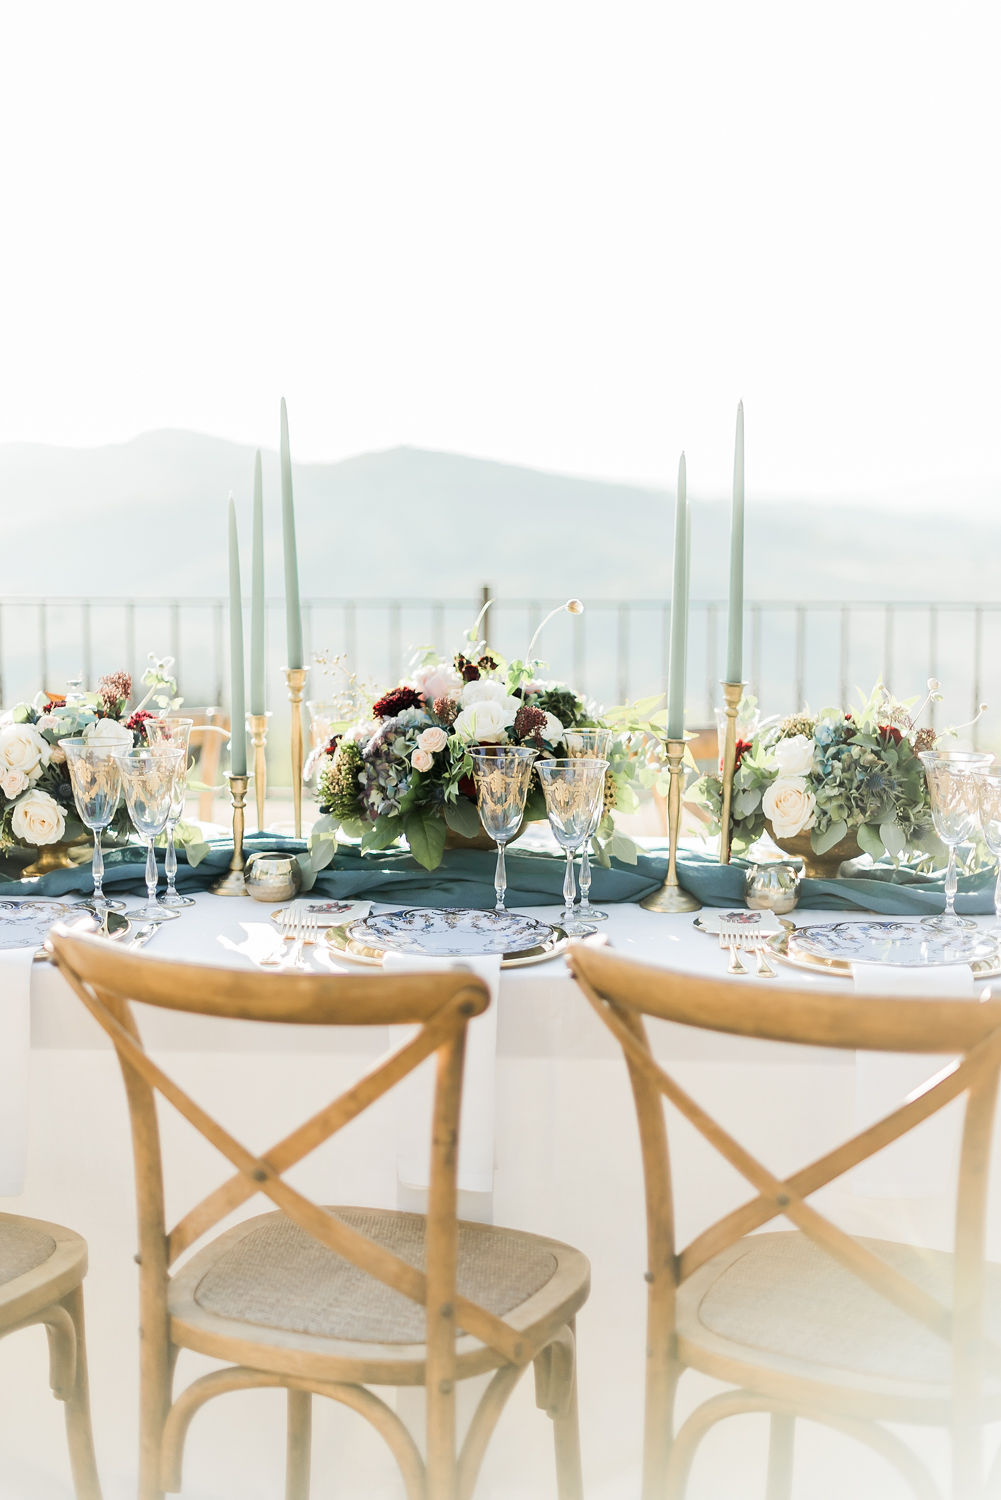 Italy style wedding table setting ideas